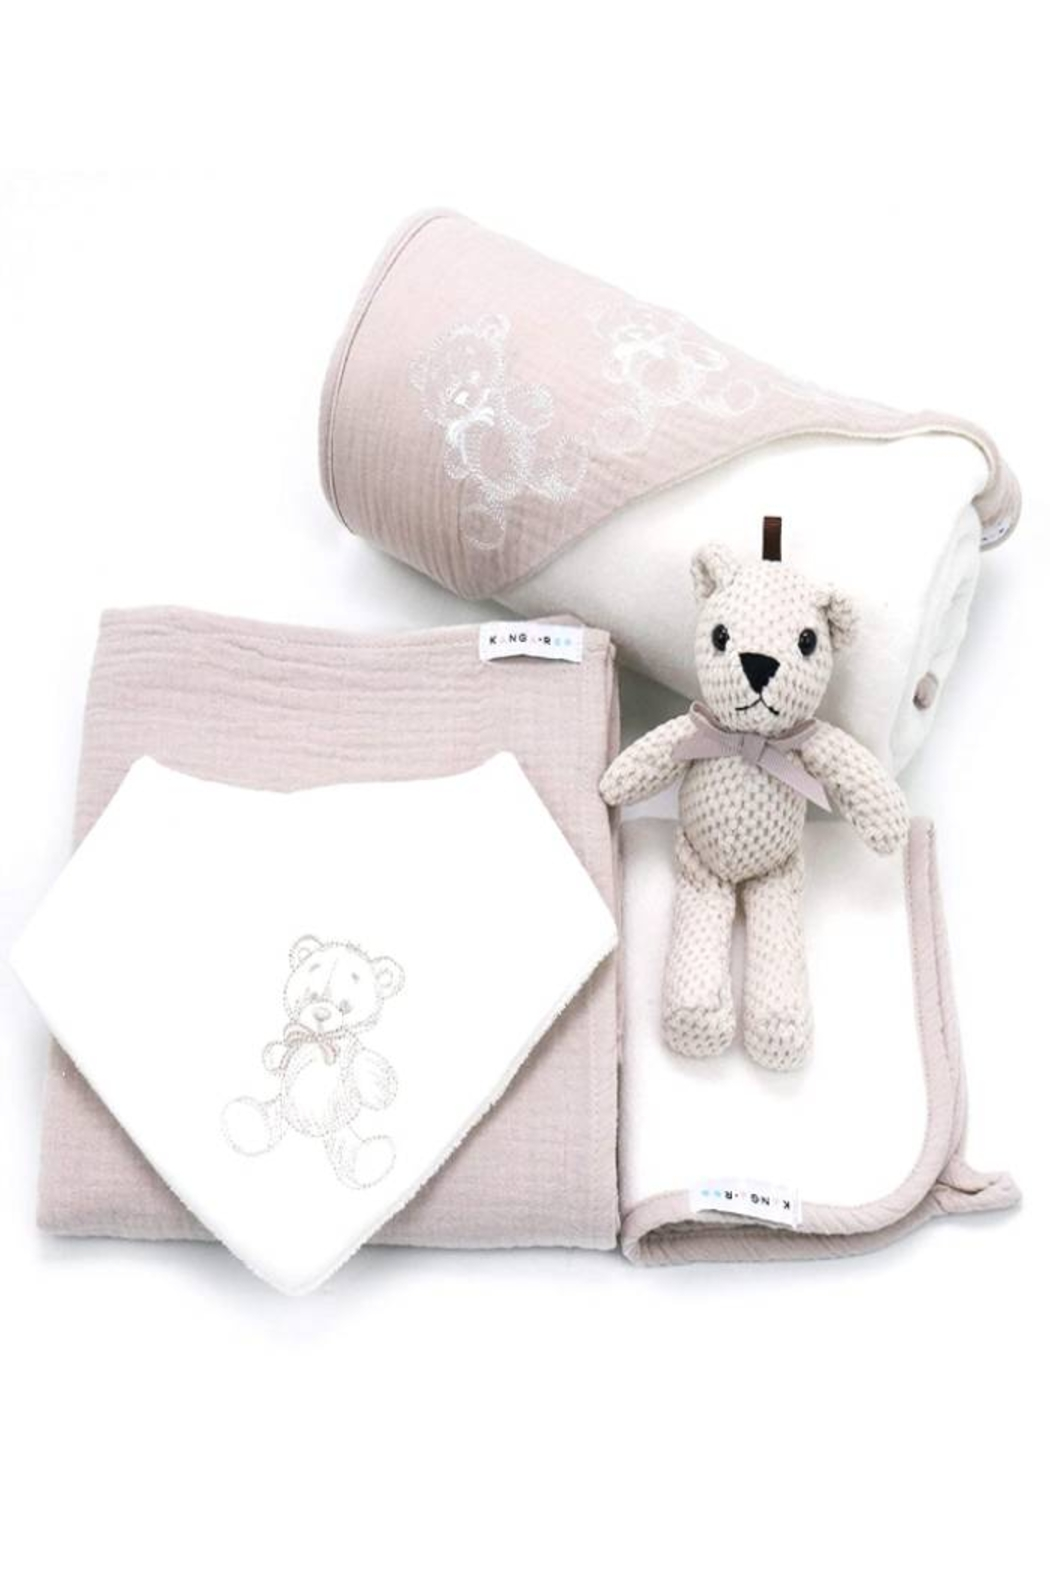 Kanga+Roo Newborn Baby Gift Basket Set - Shower Gifting for Girls. 5 Piece Set. Large Hooded Baby Towel, Washcloth, Cotton Swaddle and Teddy Bear. - Front Cropped Image